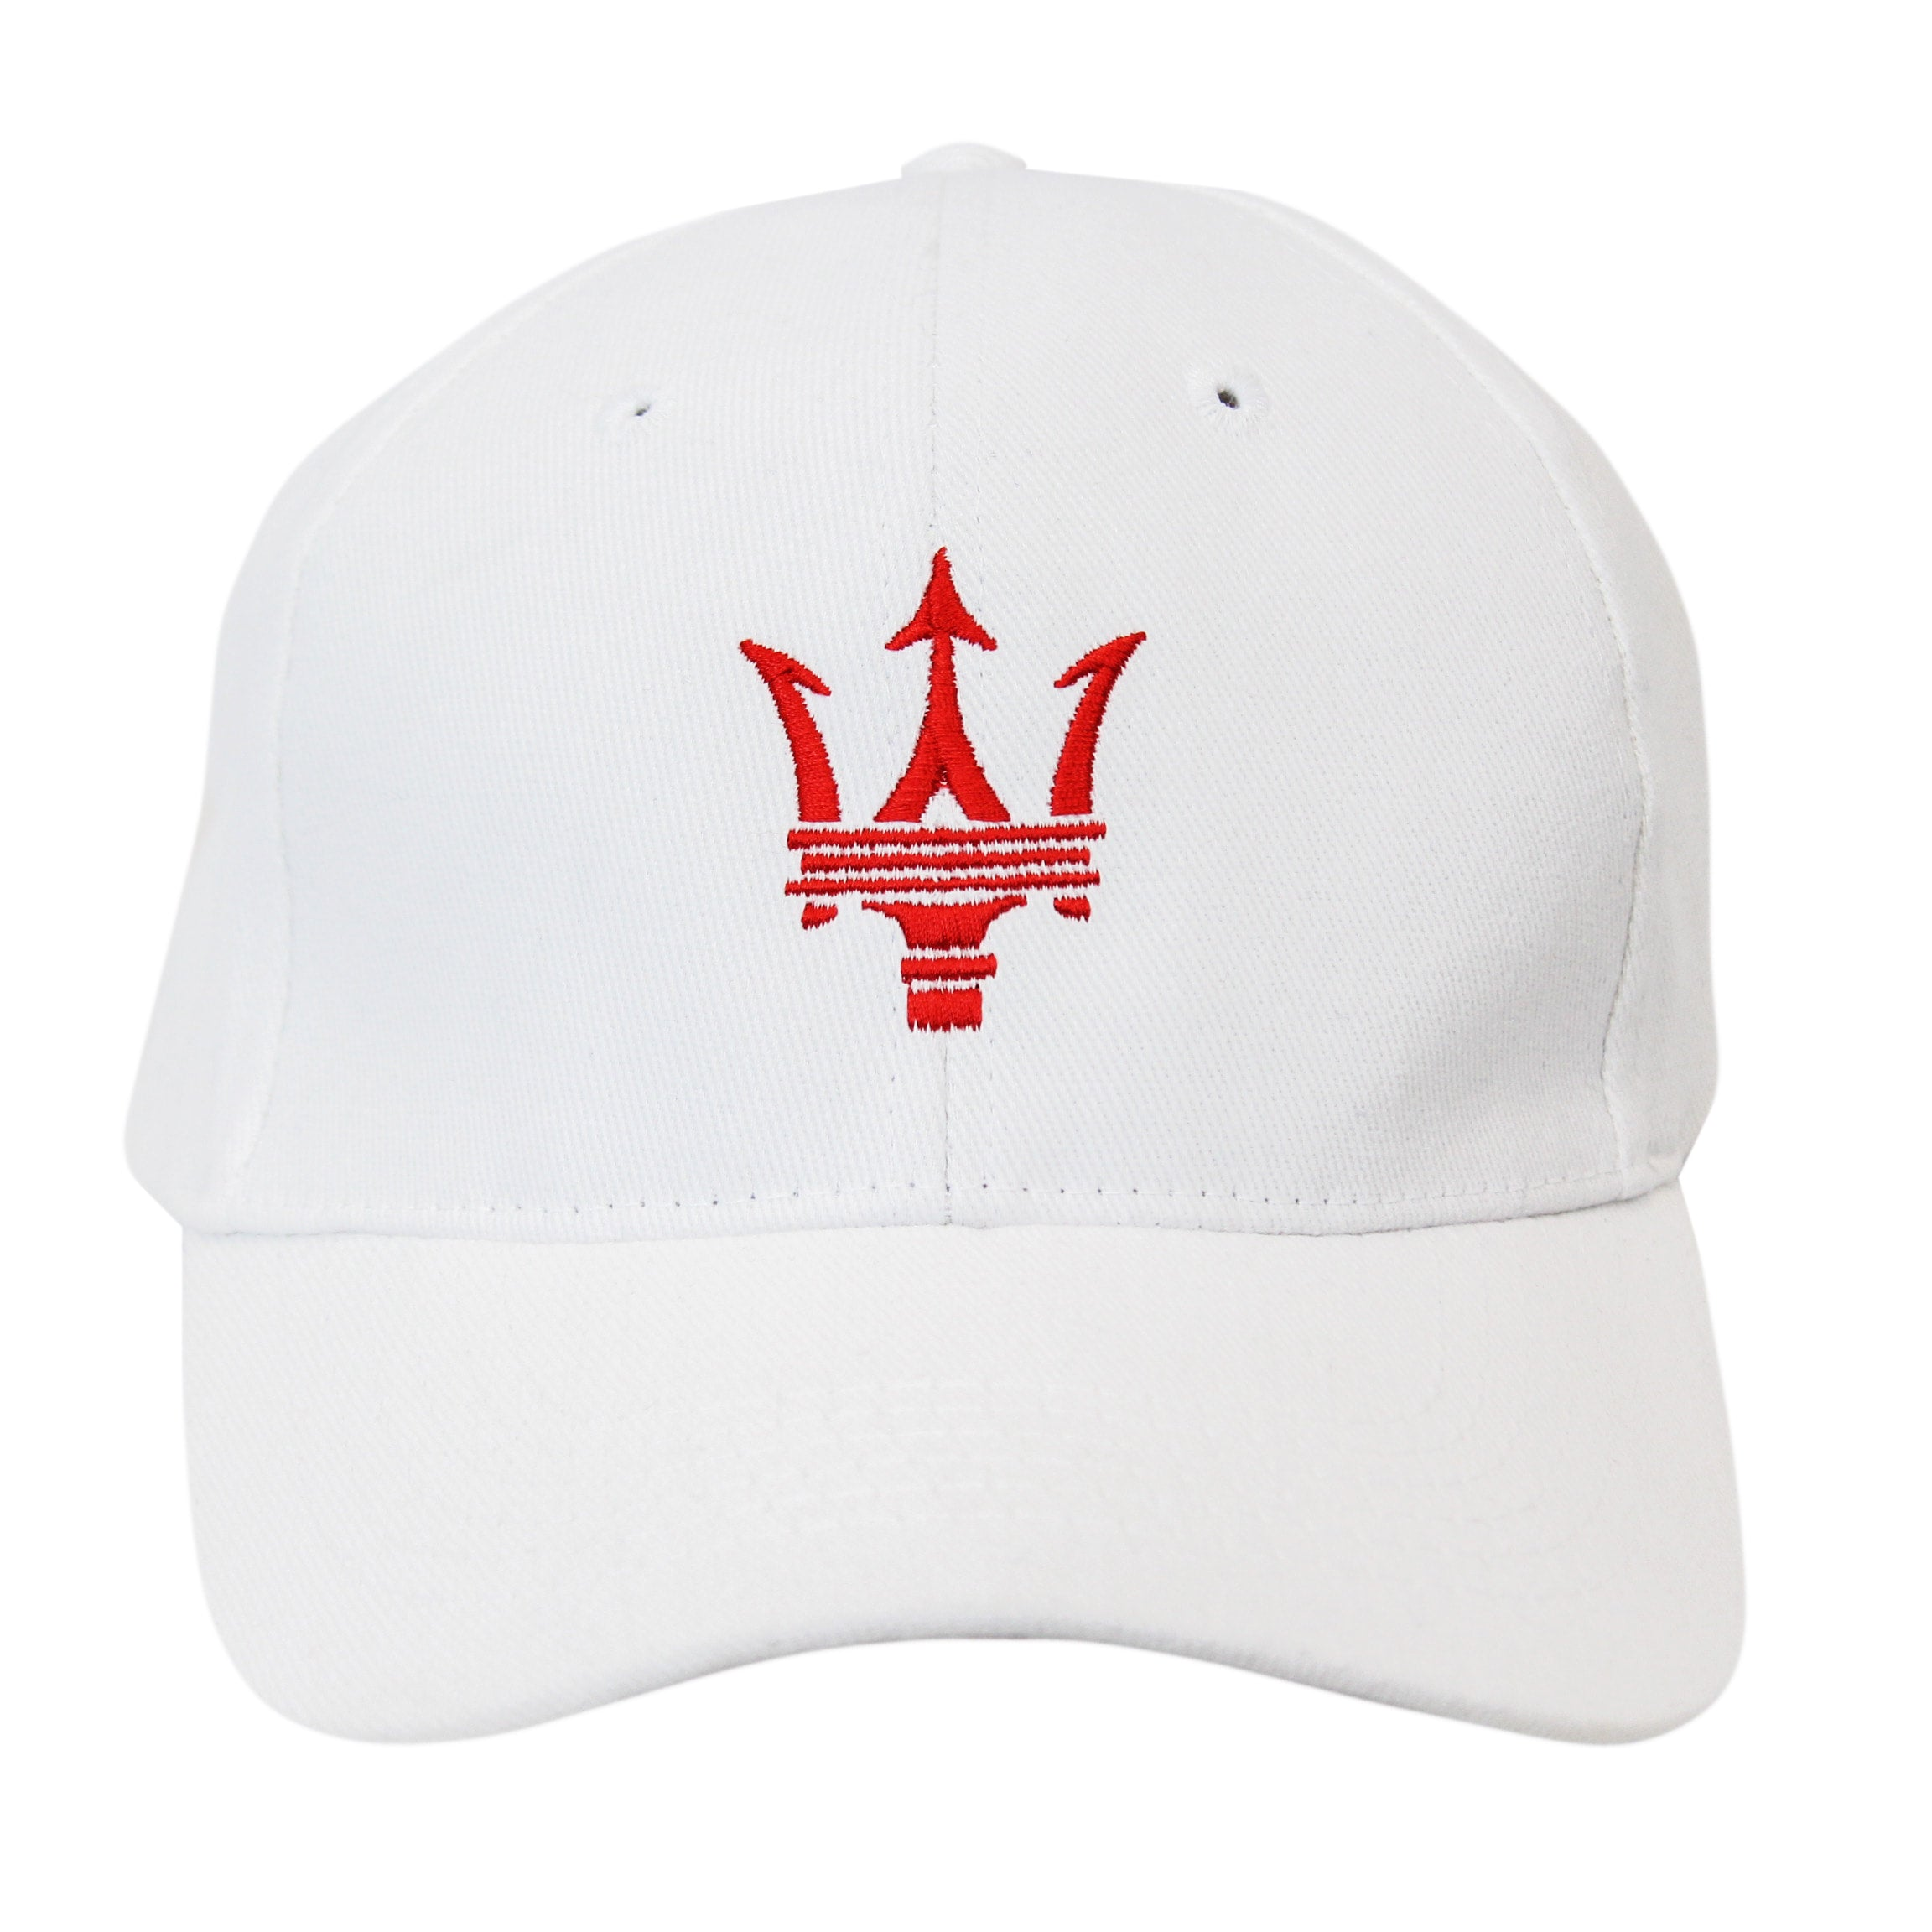 Trident Fitted Cap MD/LG